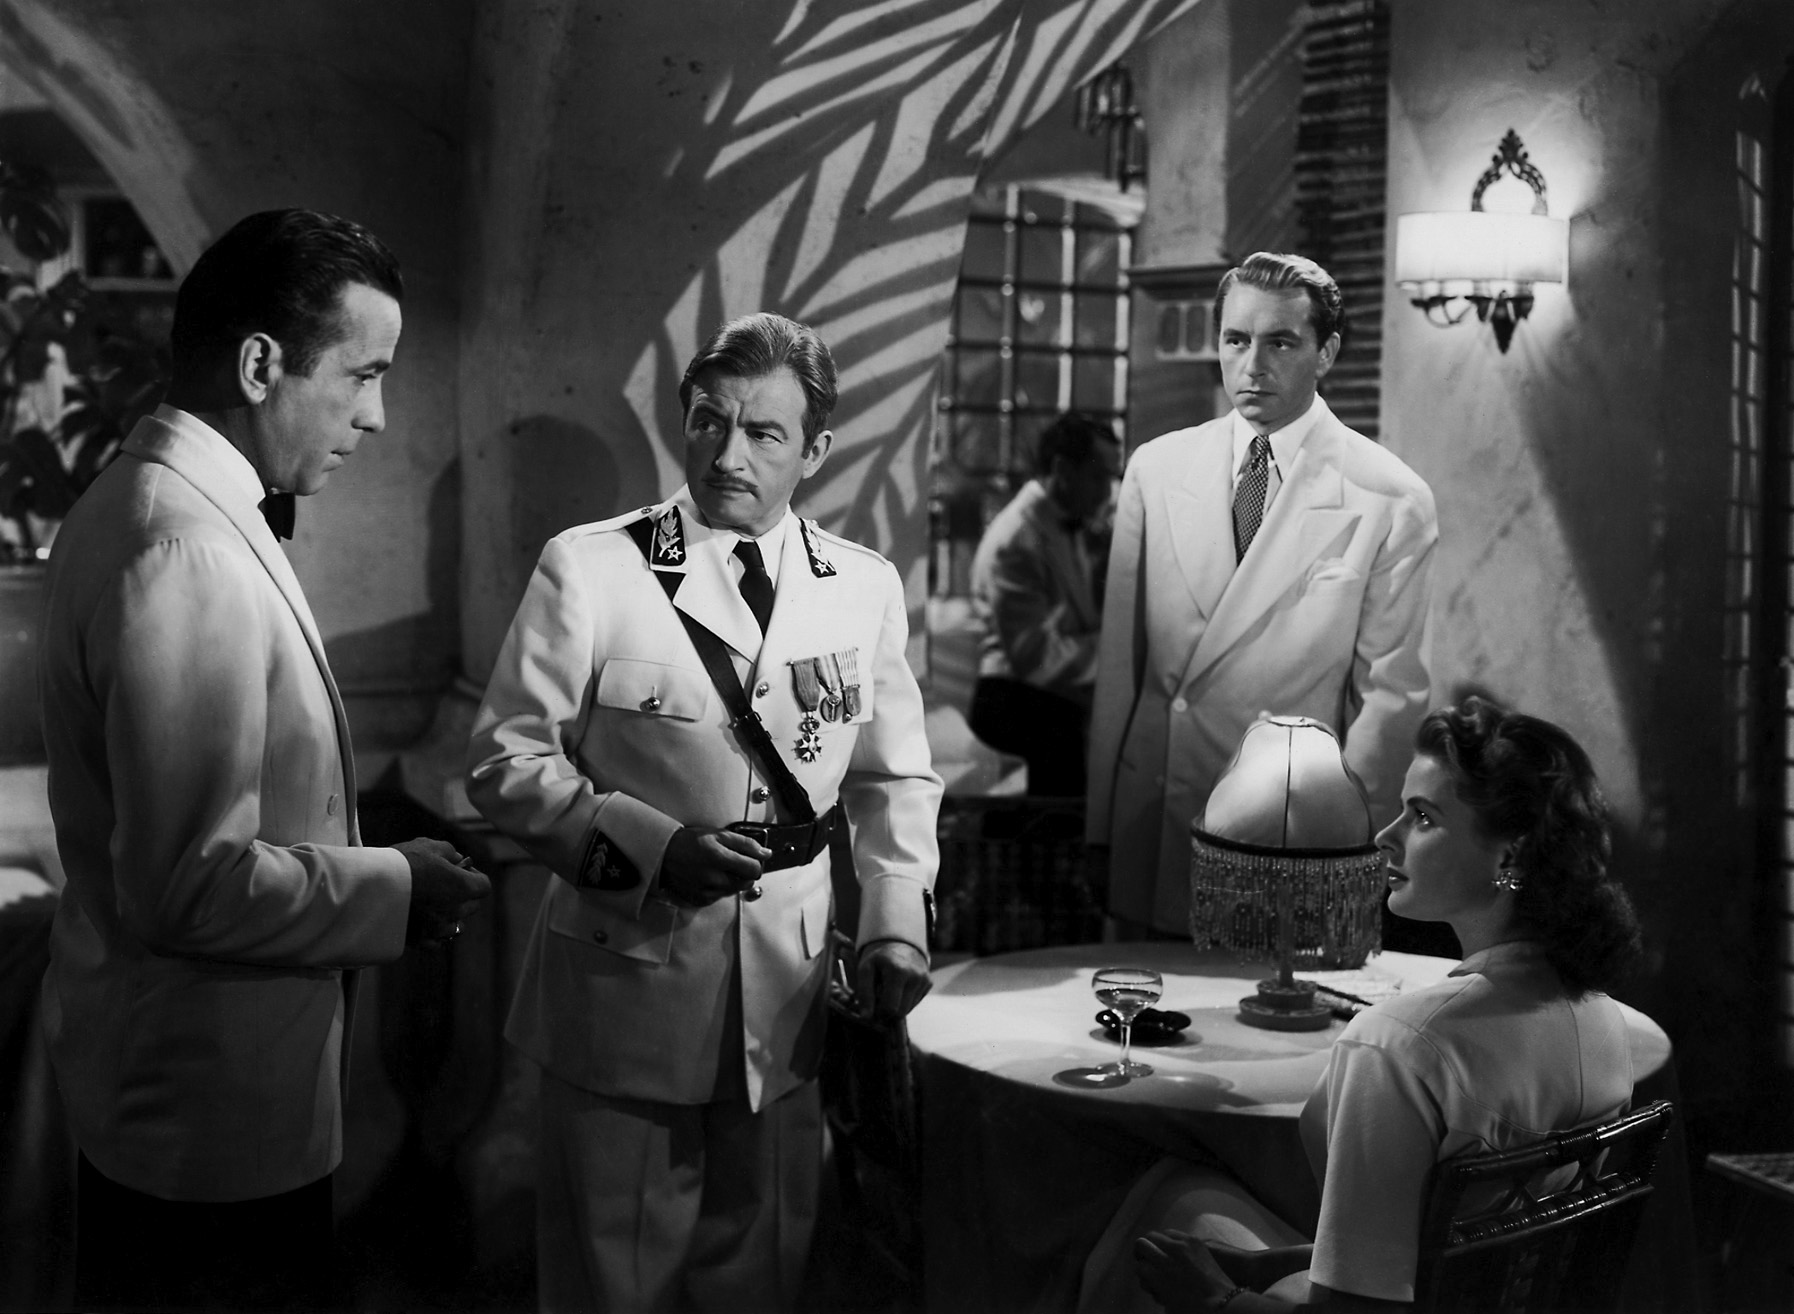 1 casablanca 1942 wonders in the dark